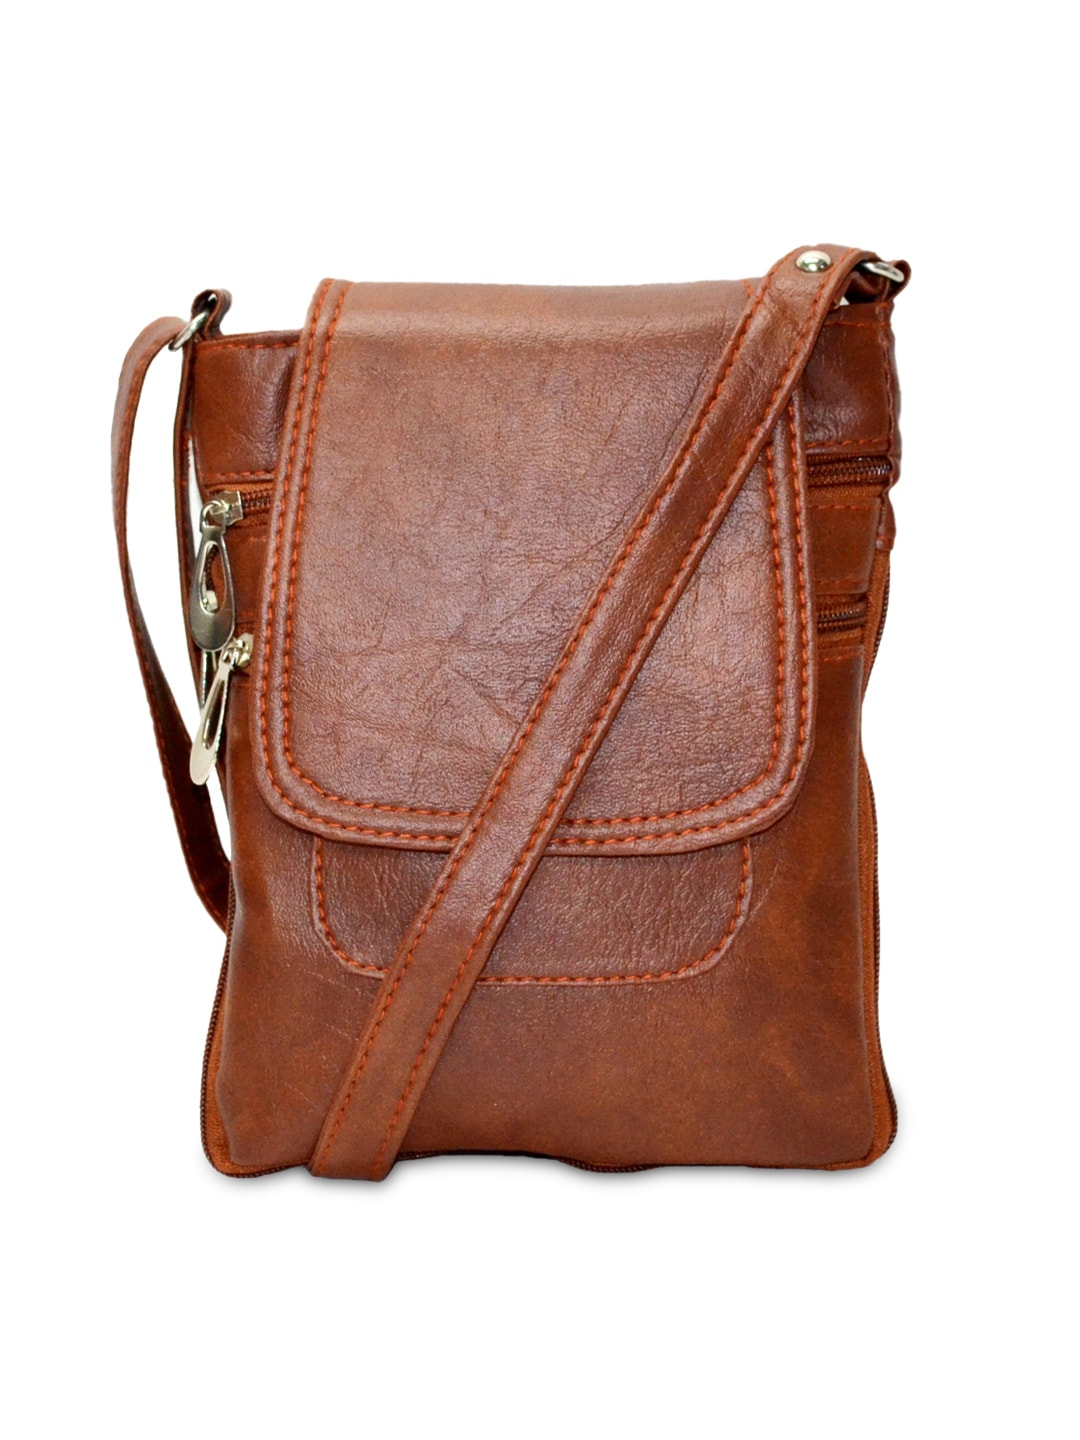 Sling Bag - Buy Sling Bags & Handbags for Women, Men & Kids | Myntra